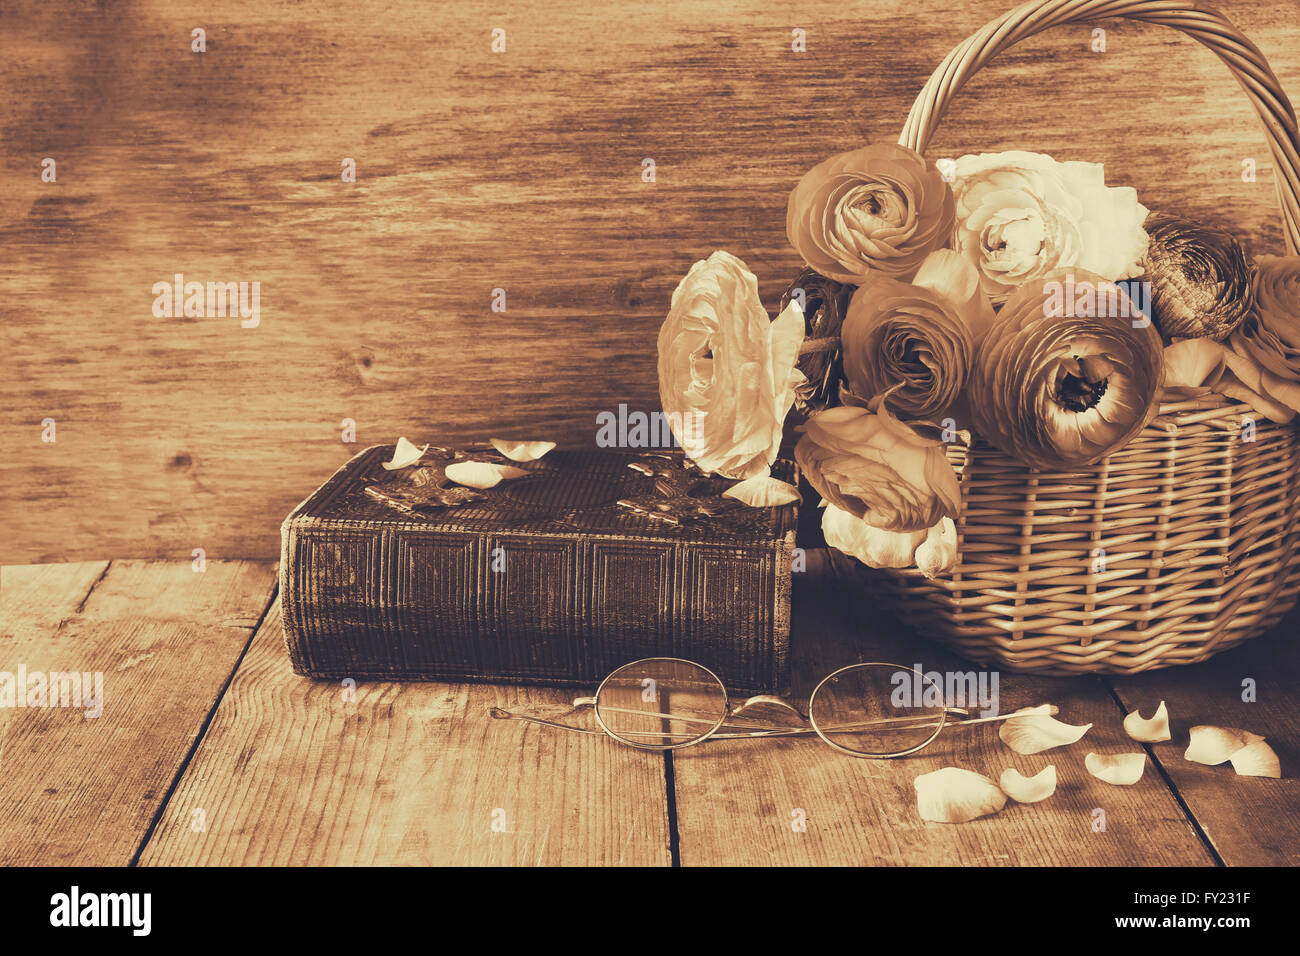 a5cfecb2eb0e2 old book and glasses next to beautiful field flowers on wooden table. vintage  filtered.